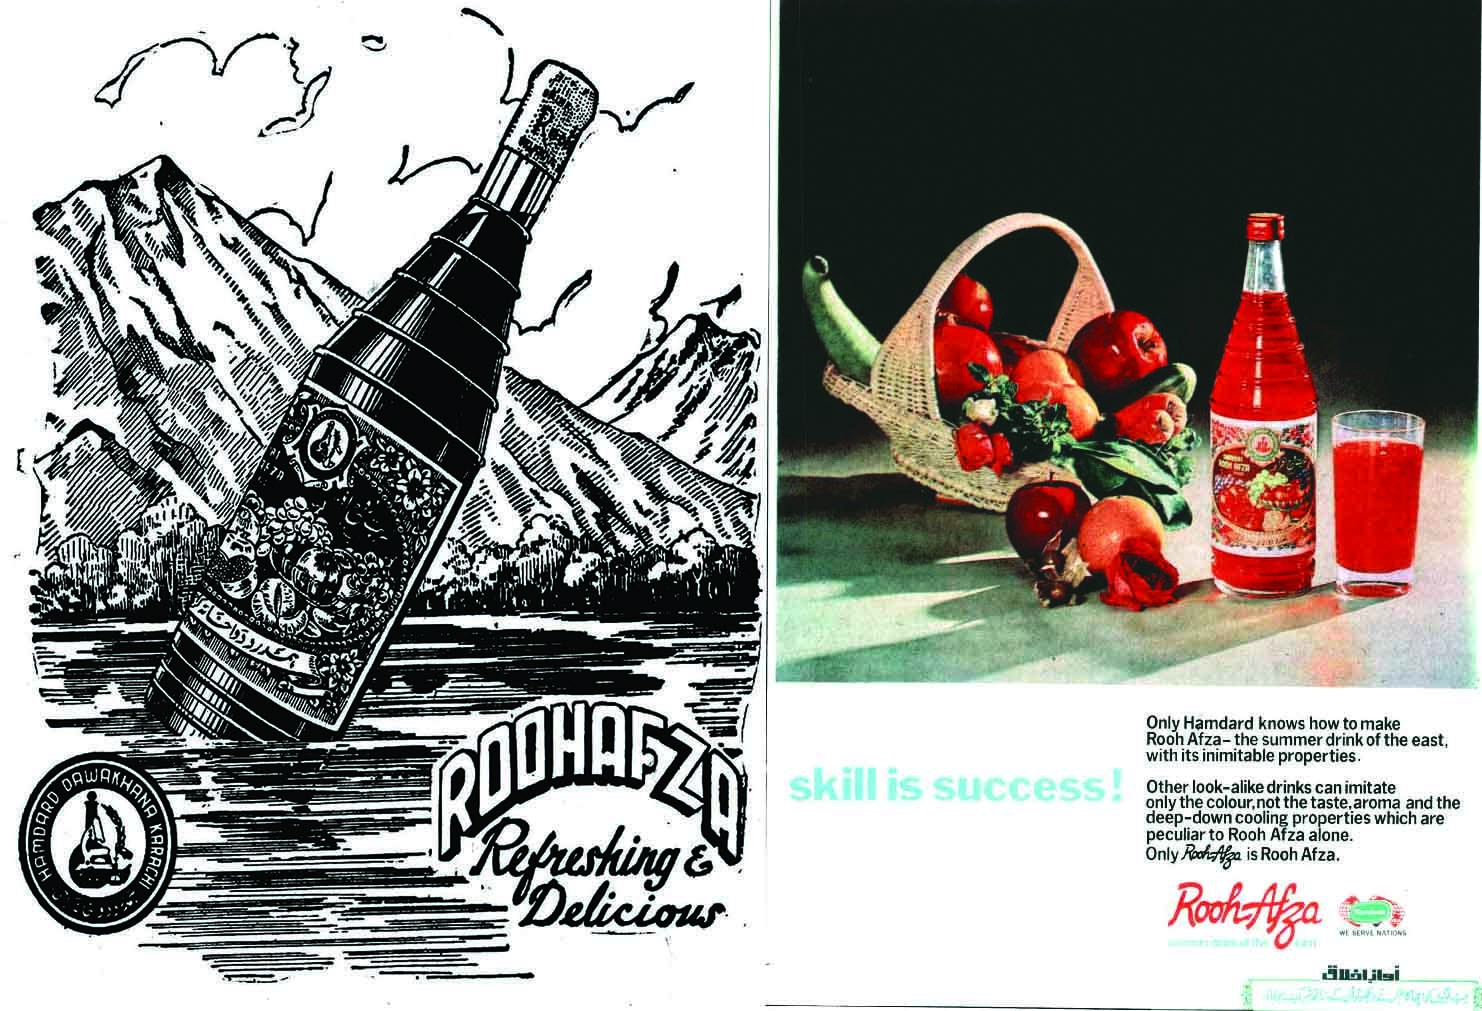 Rooh Afza ads in 1952 and 1985